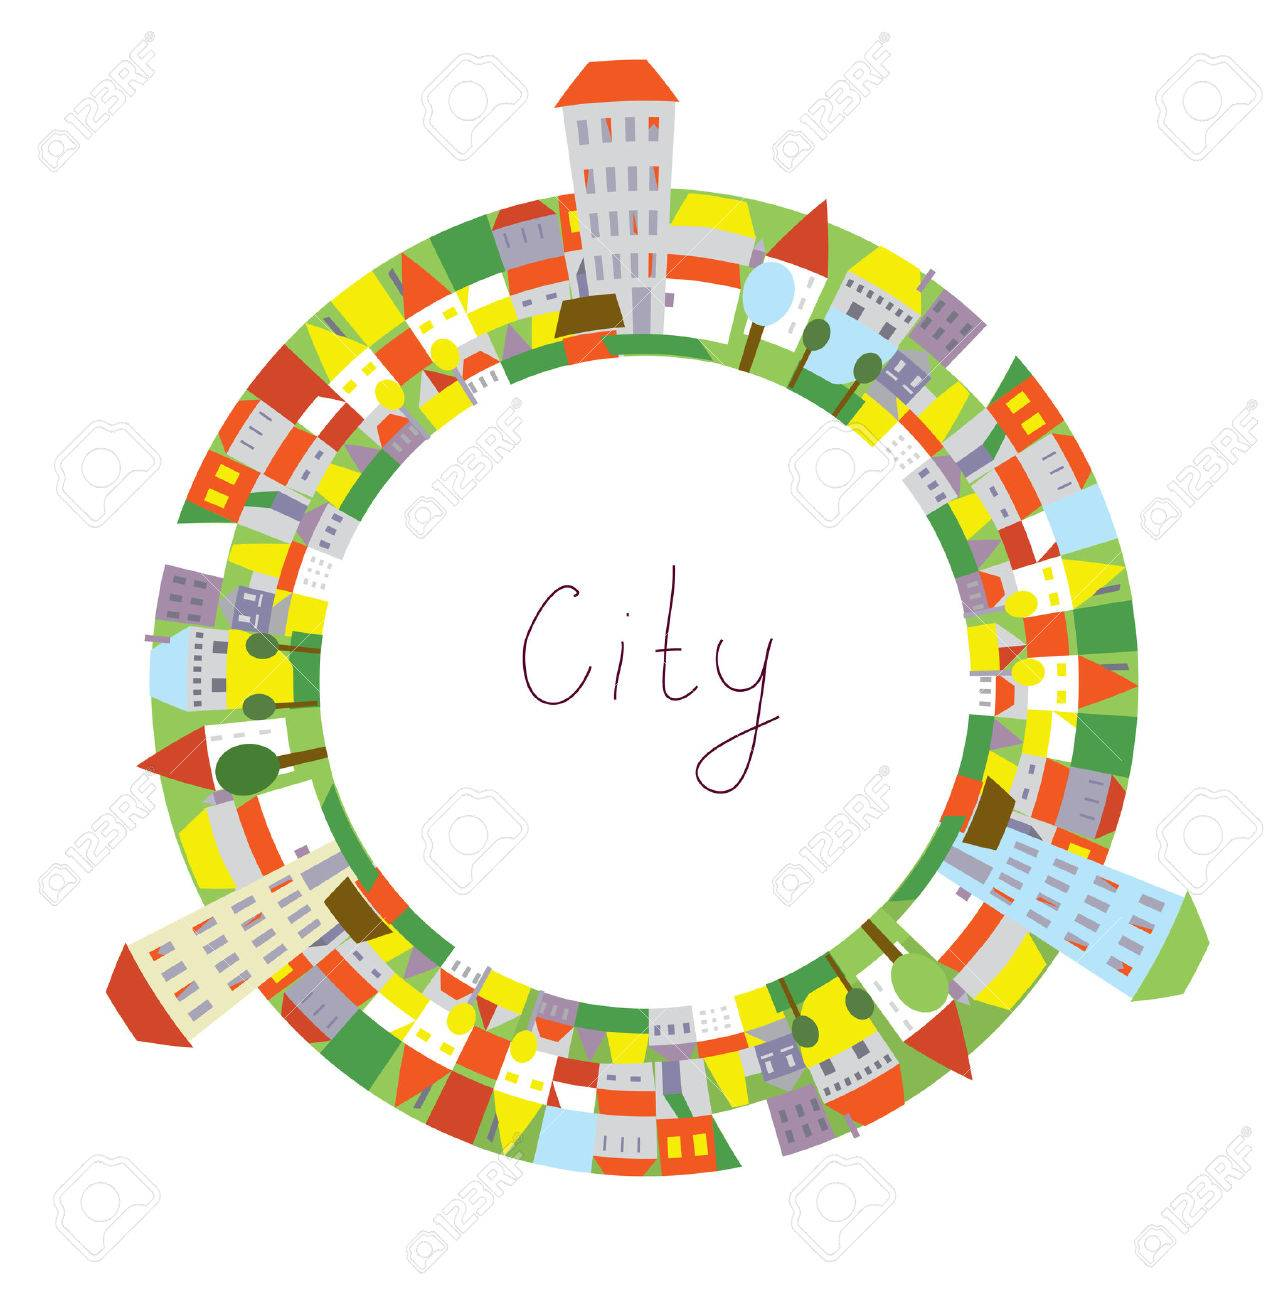 Cartoon of city circle frame with funny houses for kids - 26569280